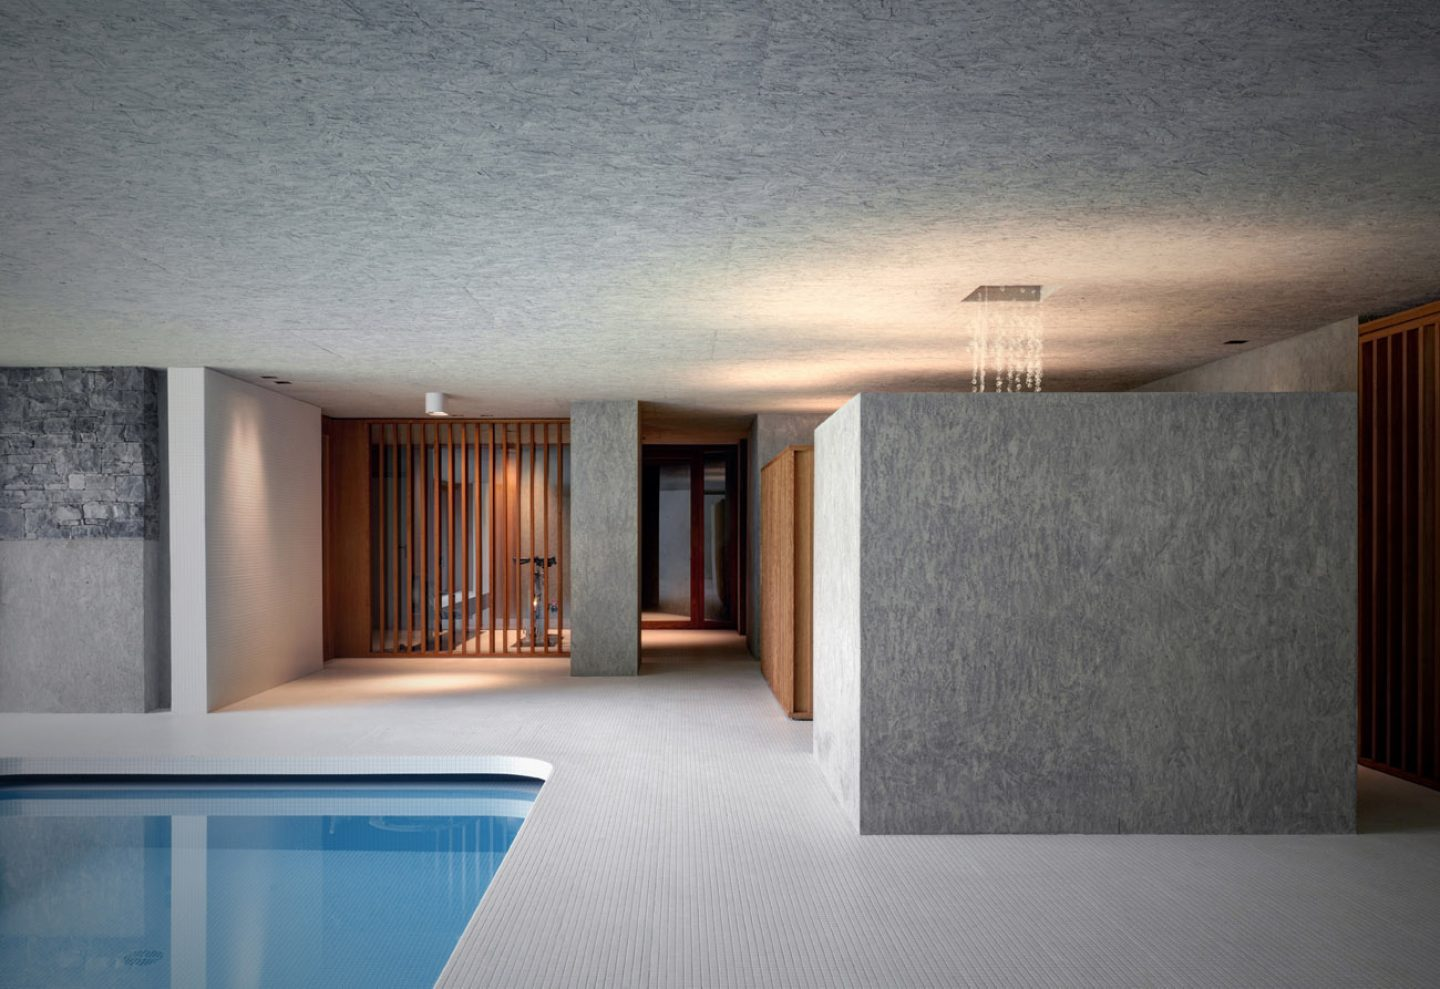 architecture_lapiscinadelroccolo_swimmingpool_pavillion_11